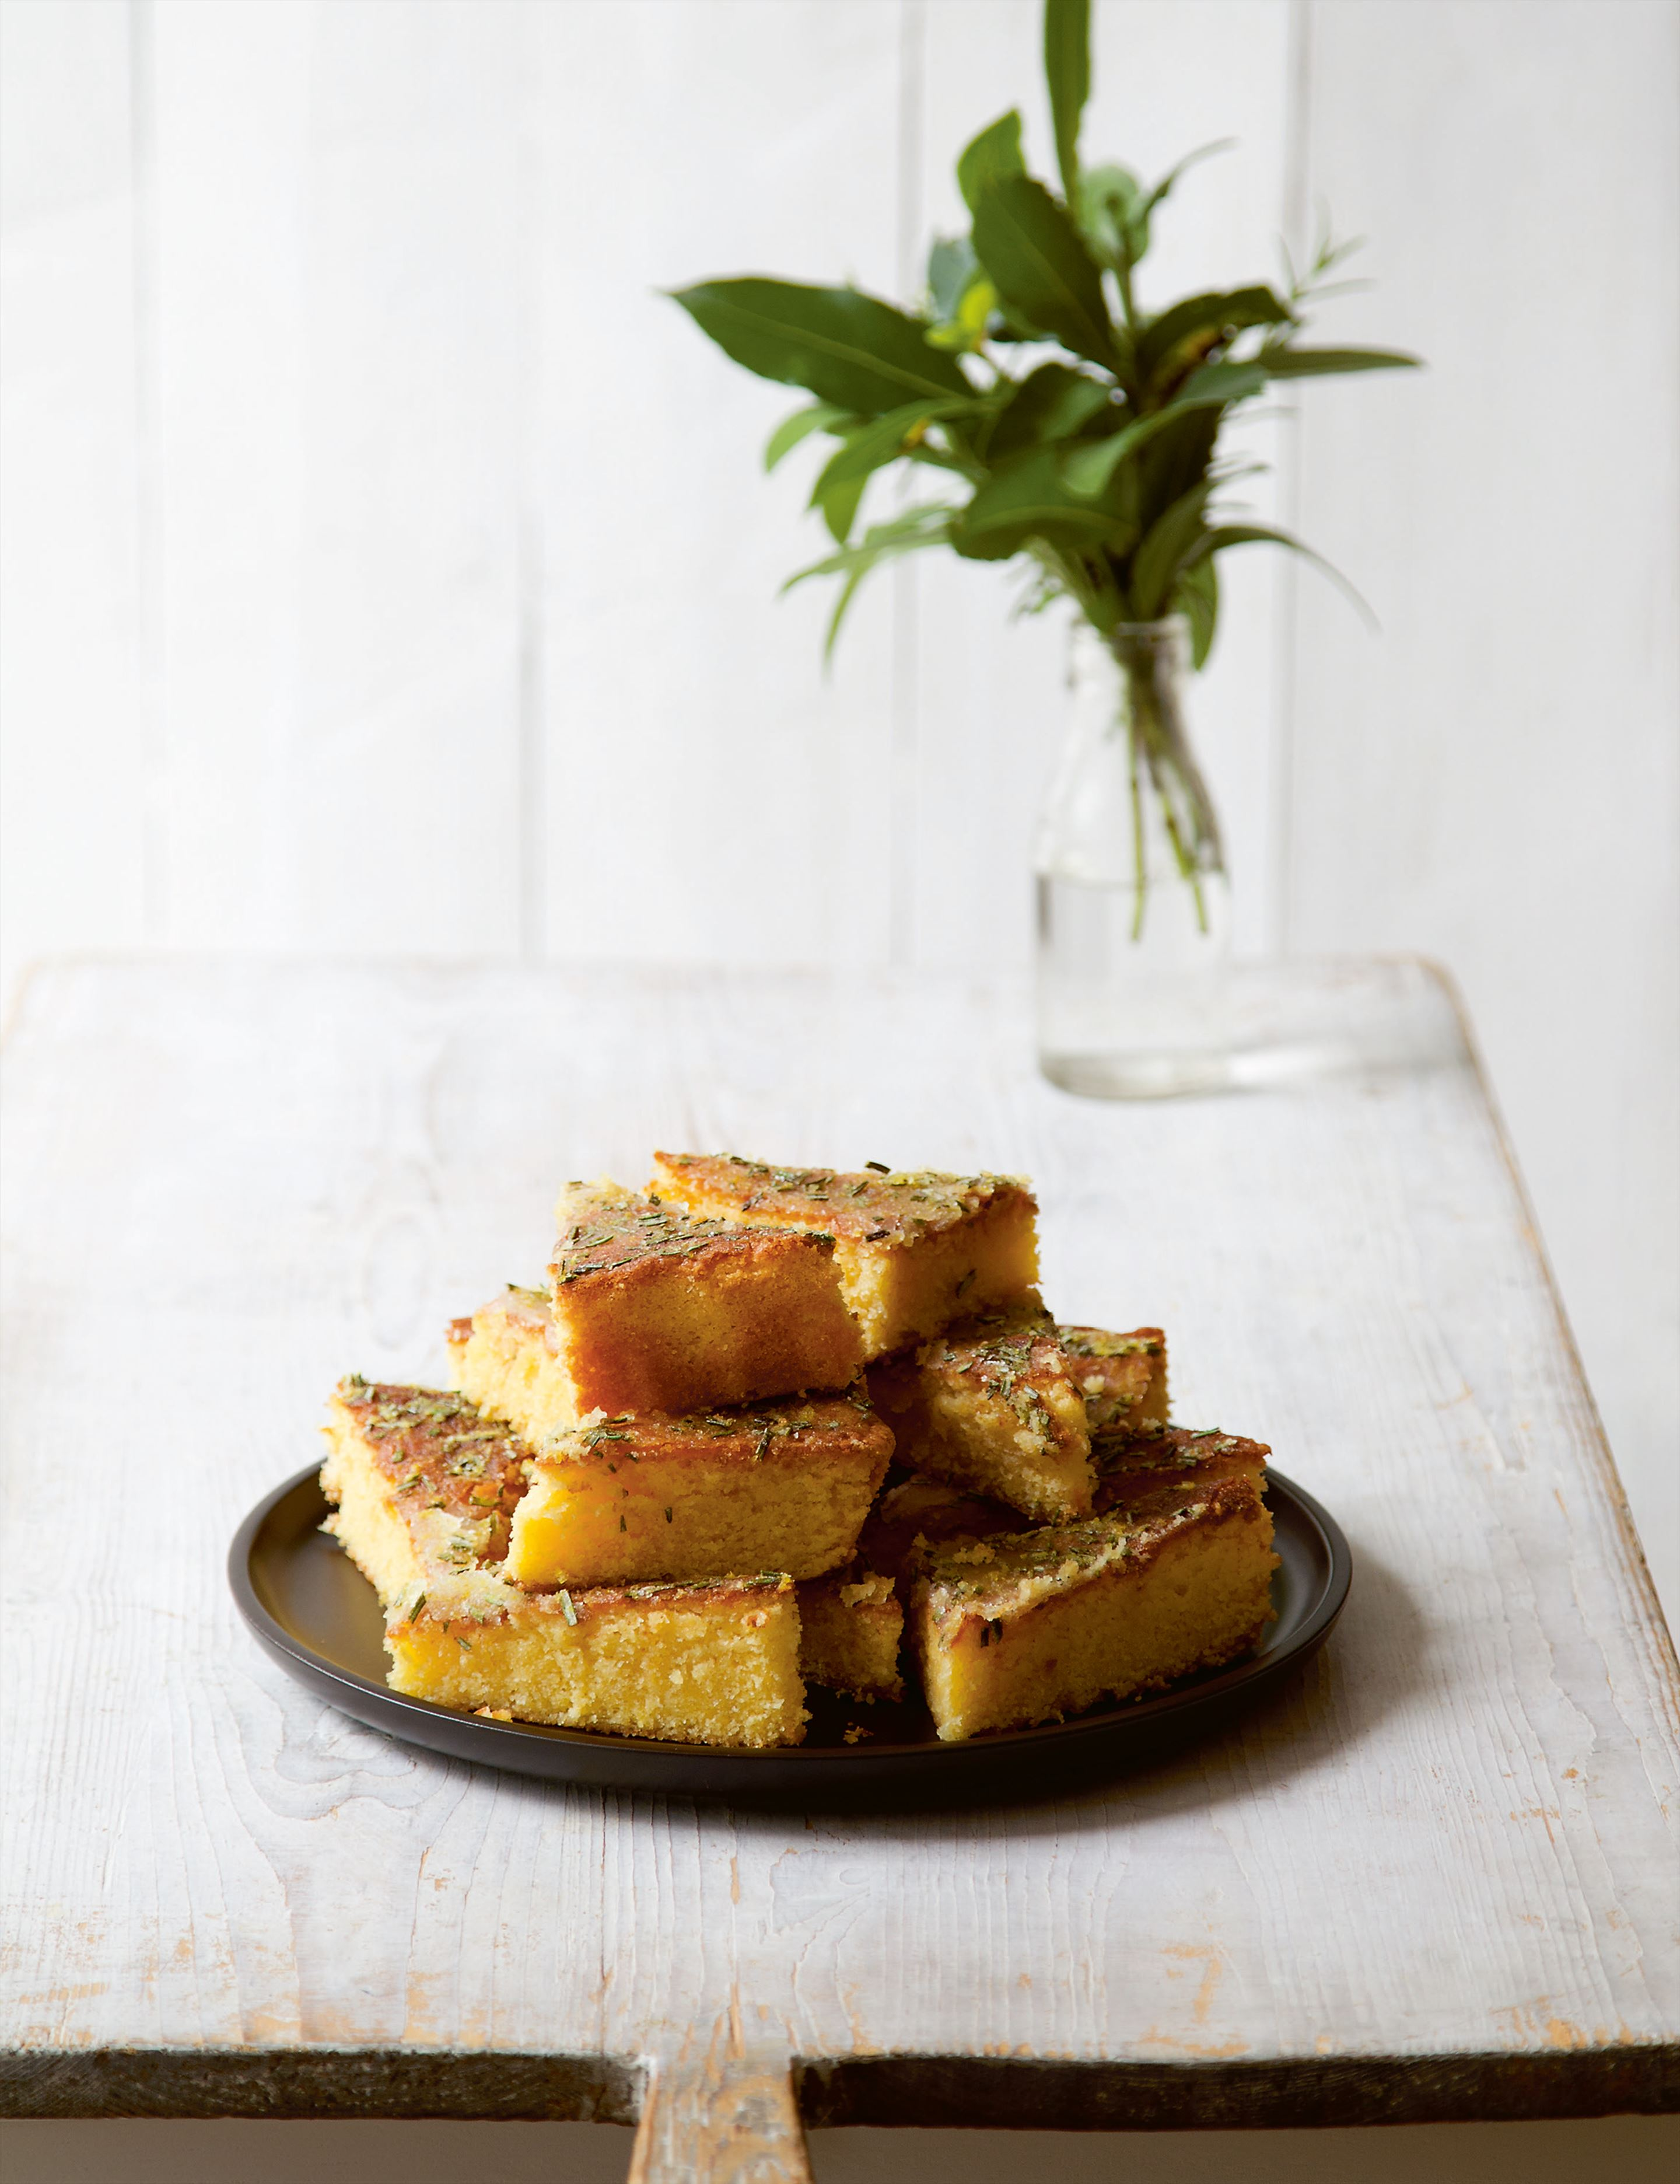 Lemon, cornmeal and rosemary tray bake